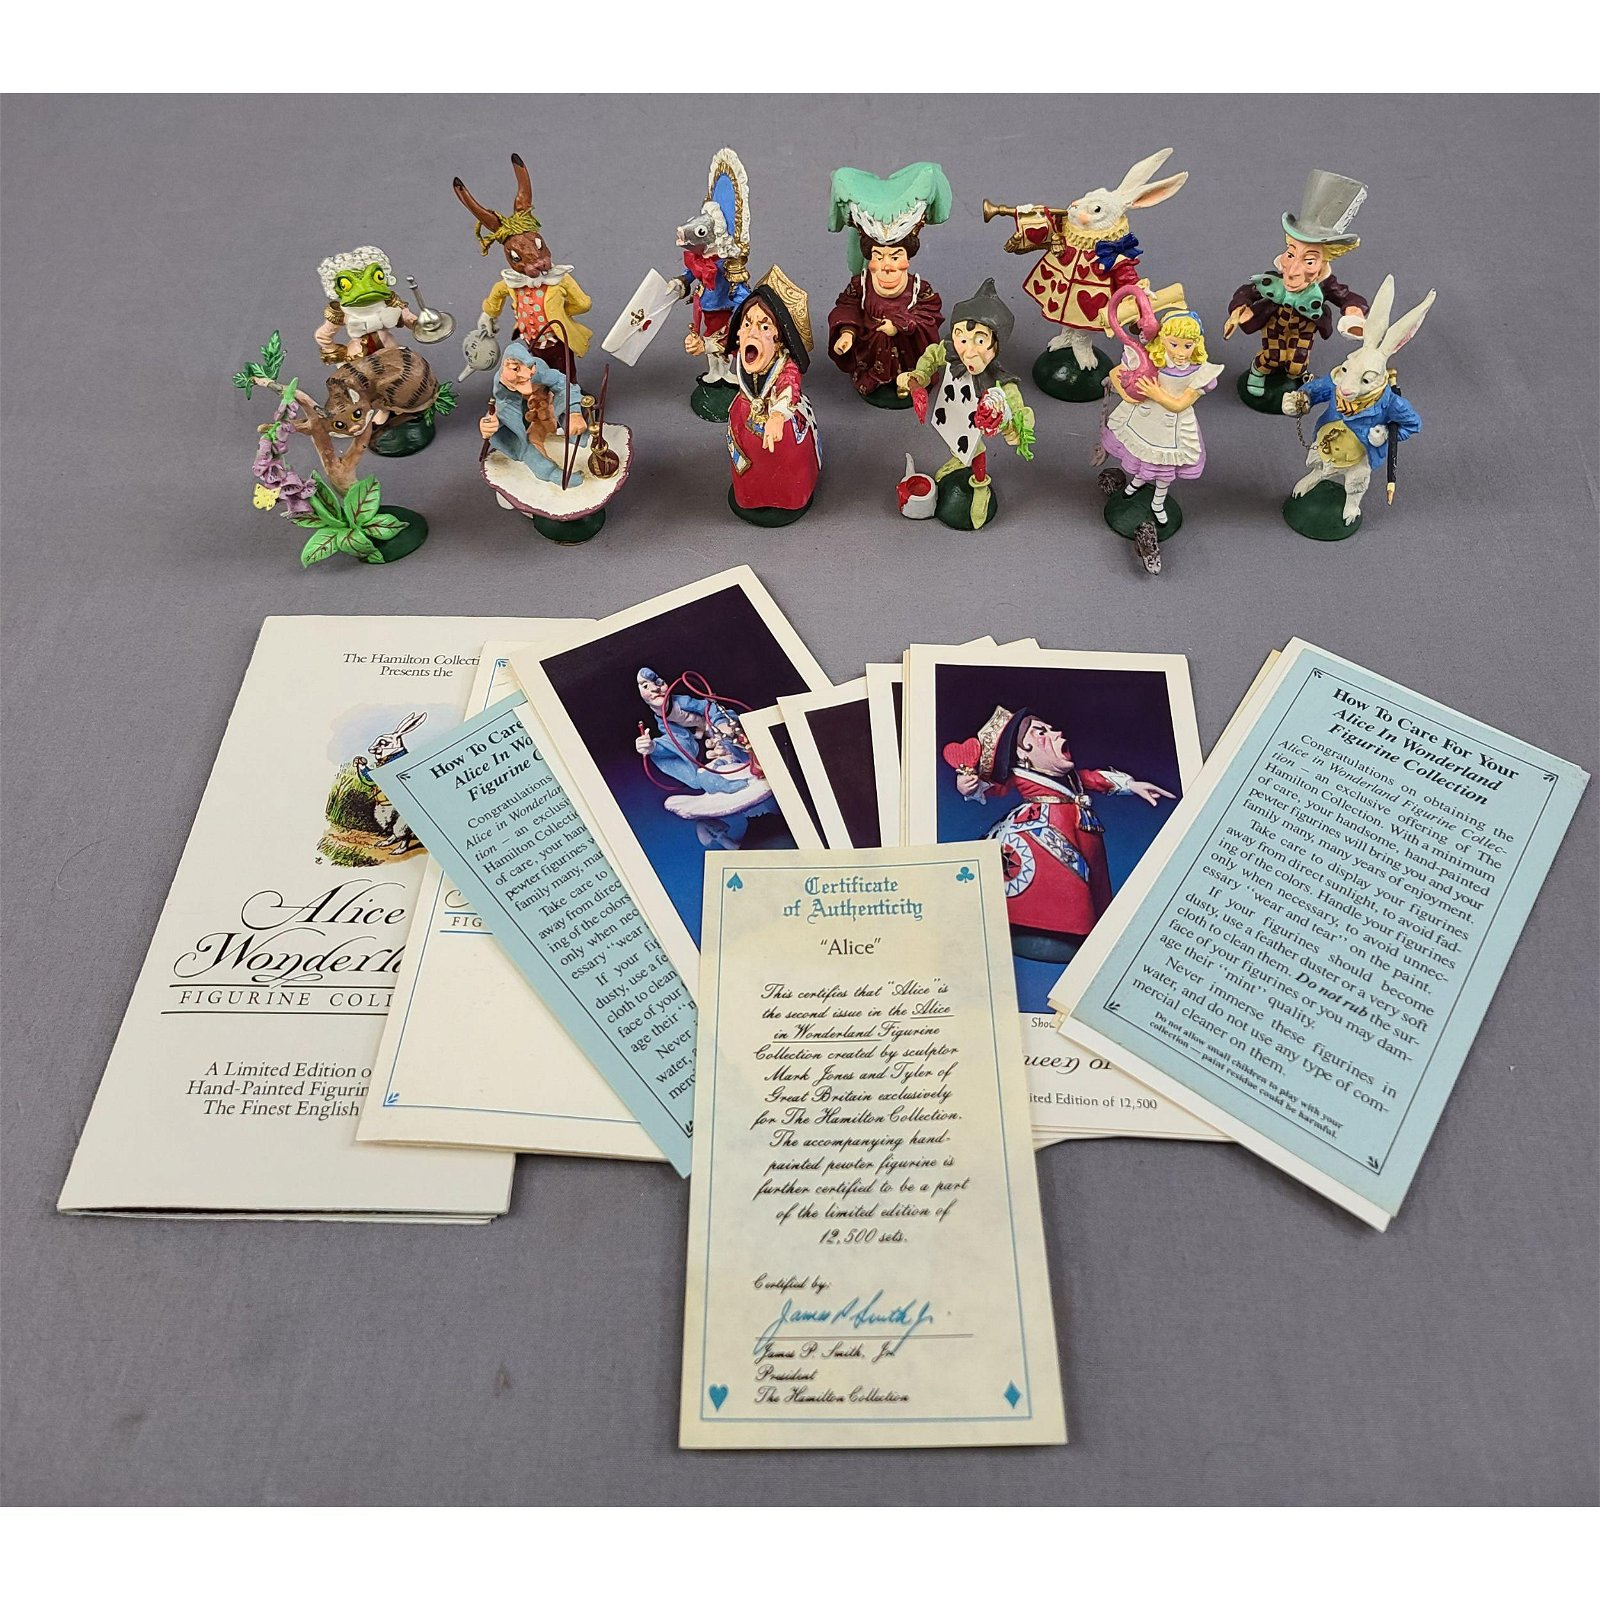 Limited Edition Hand-Painted Pewter Figures